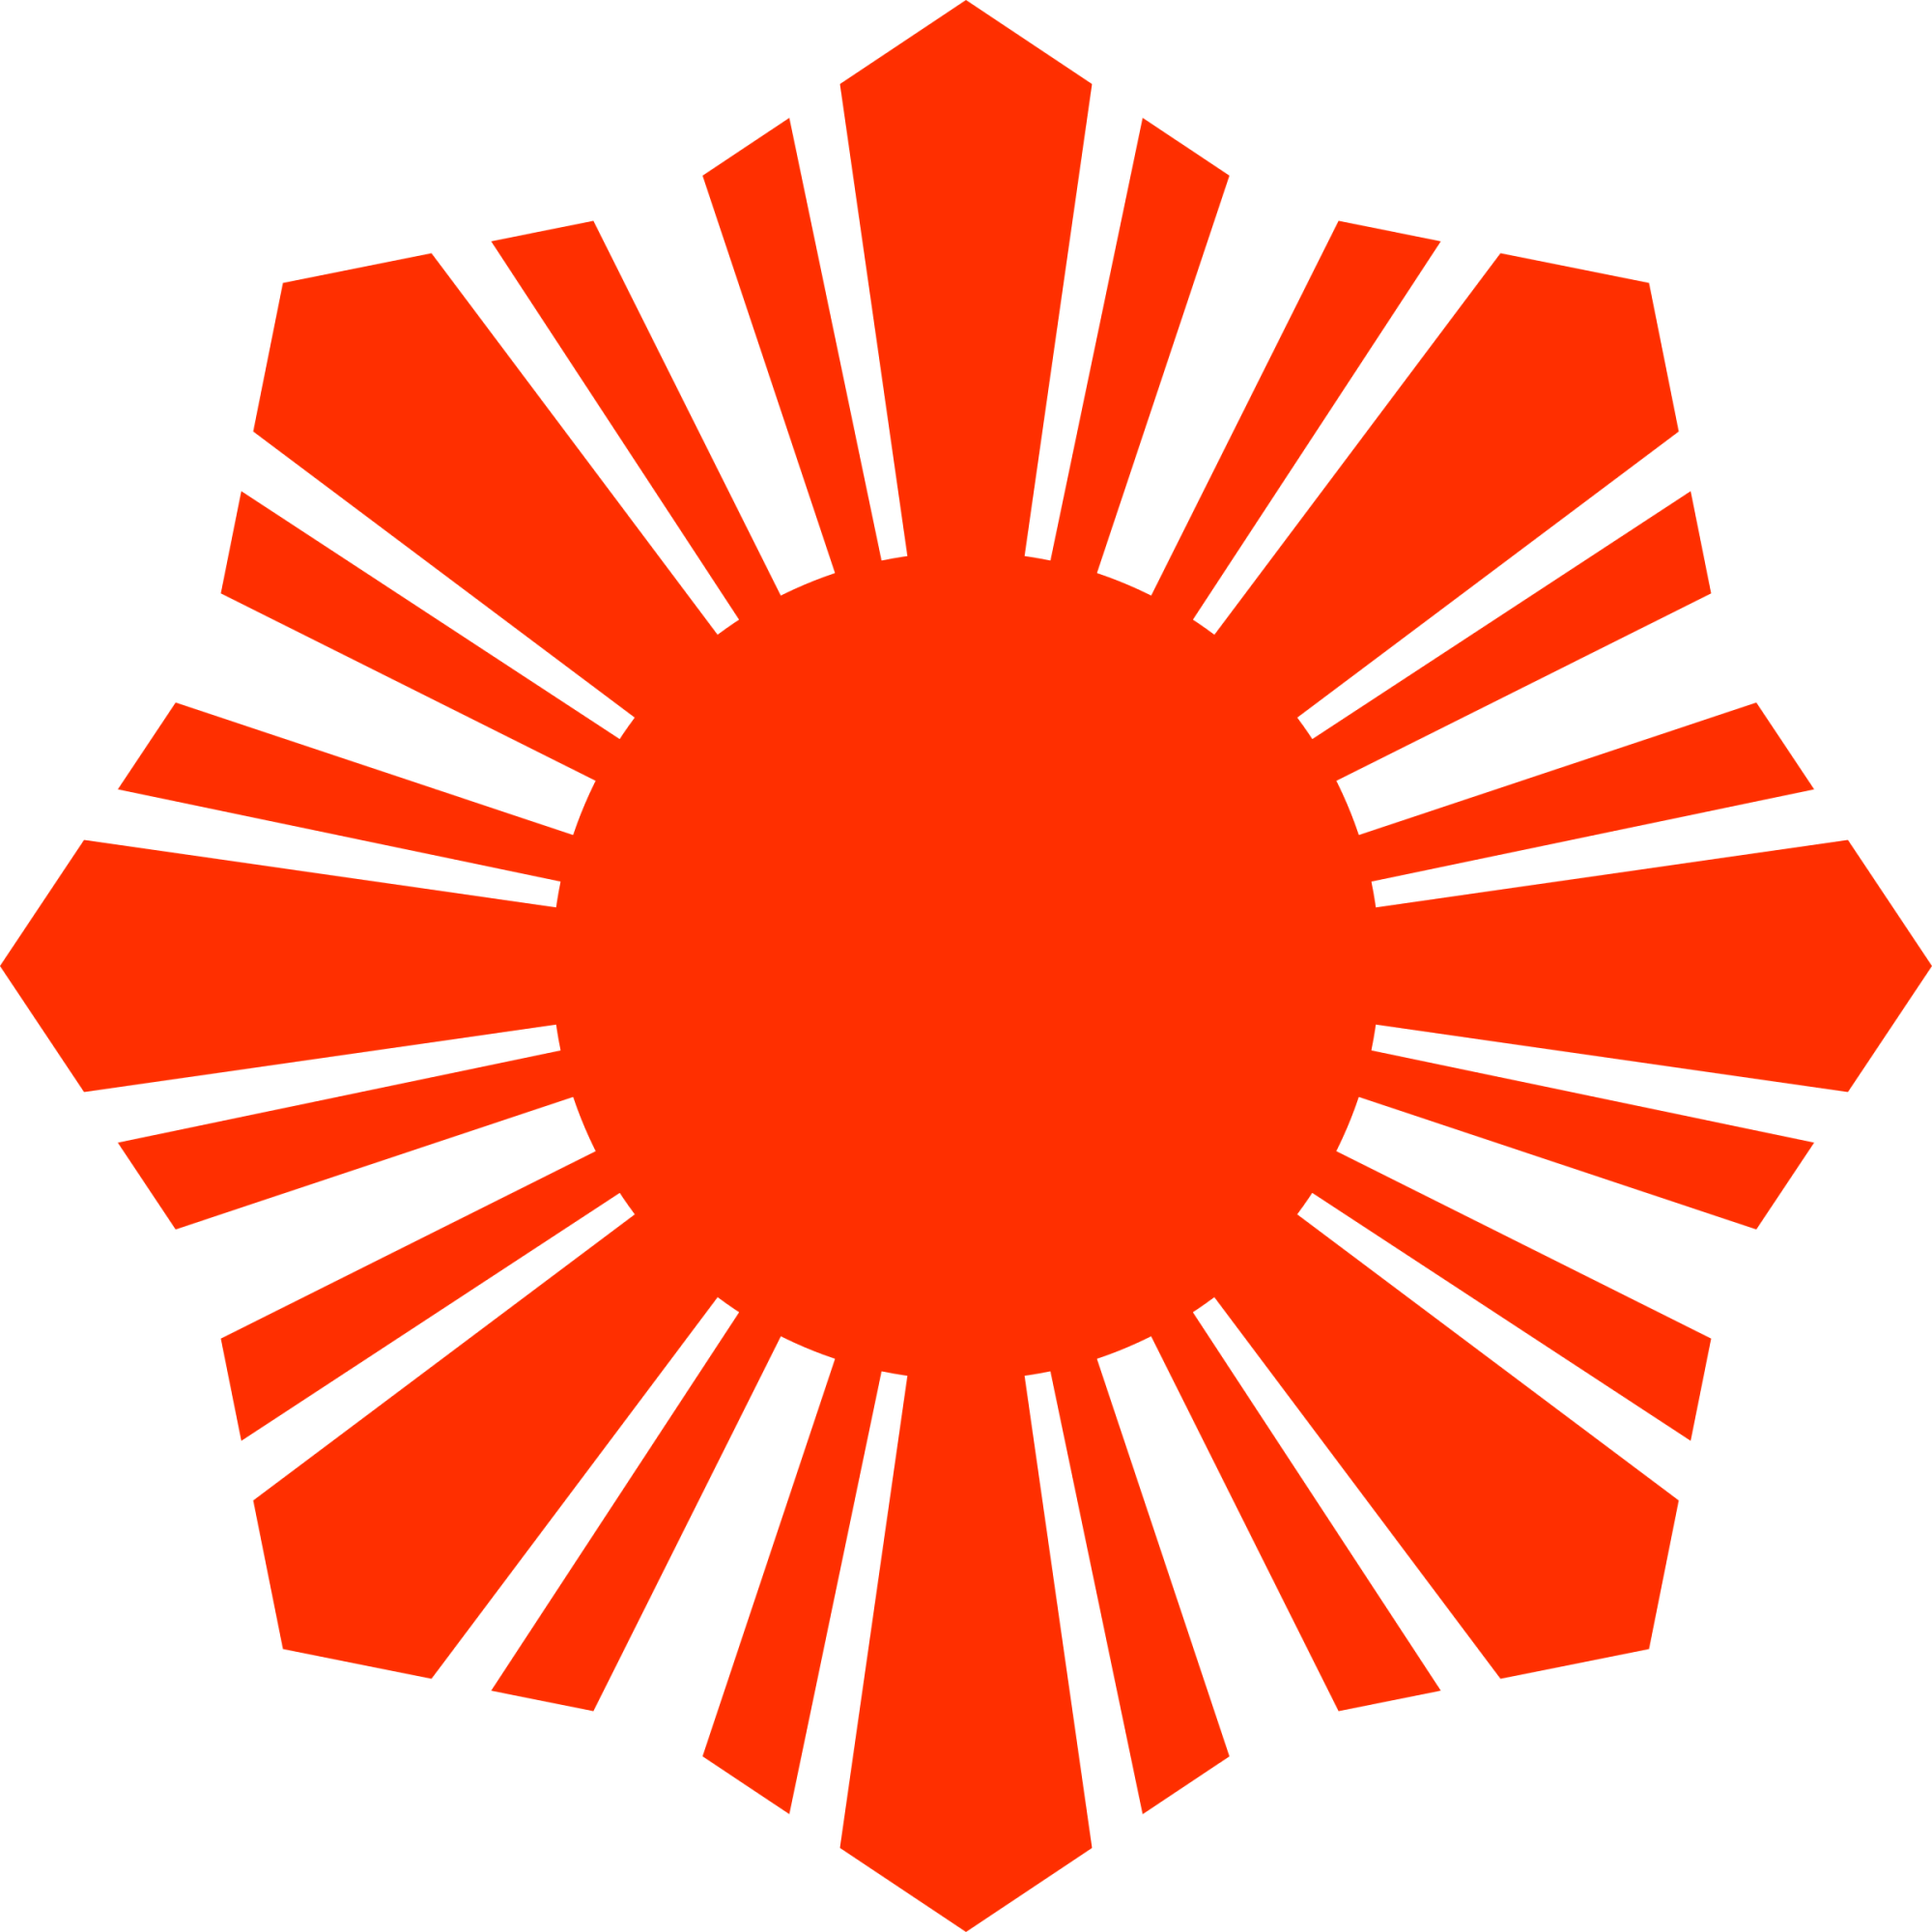 hight resolution of red sun clipart